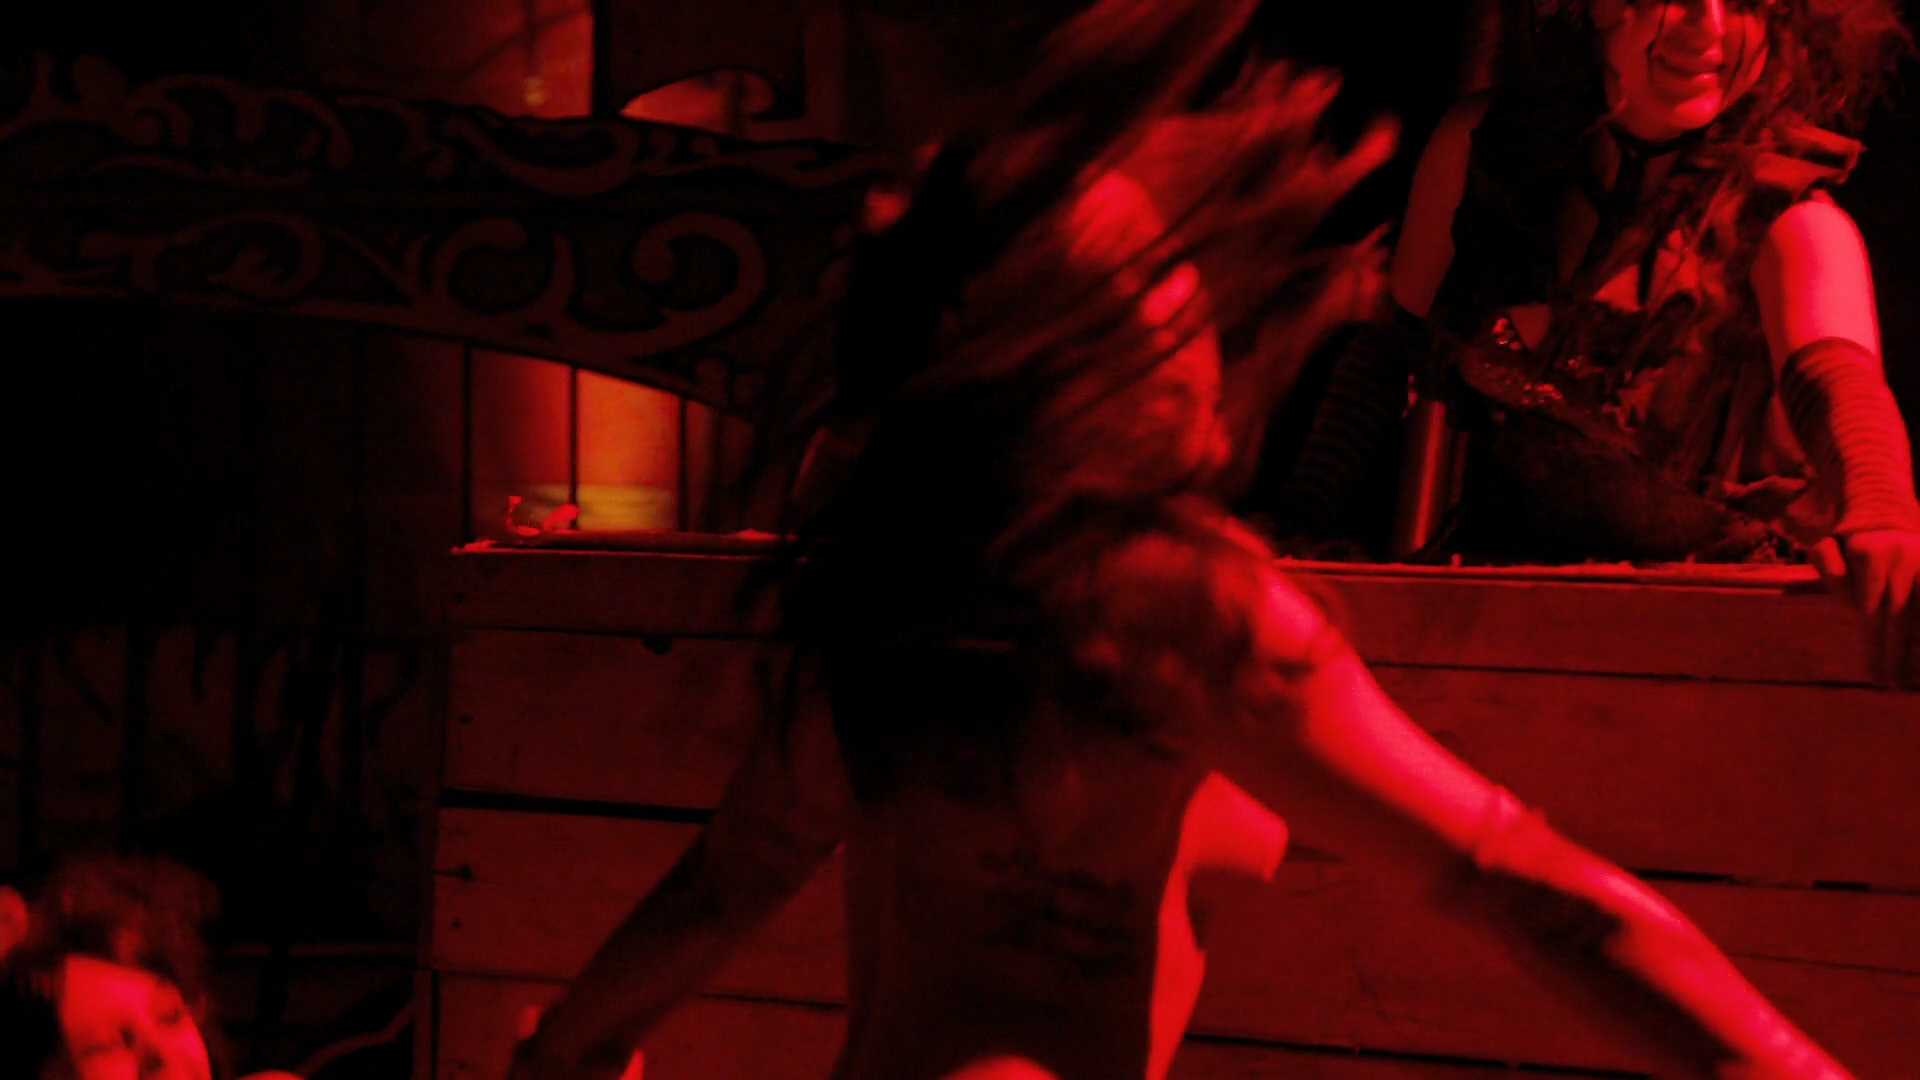 Briana Evigan nude topless with pasties - The Devil's Carnival (2012) hd1080p. (3)